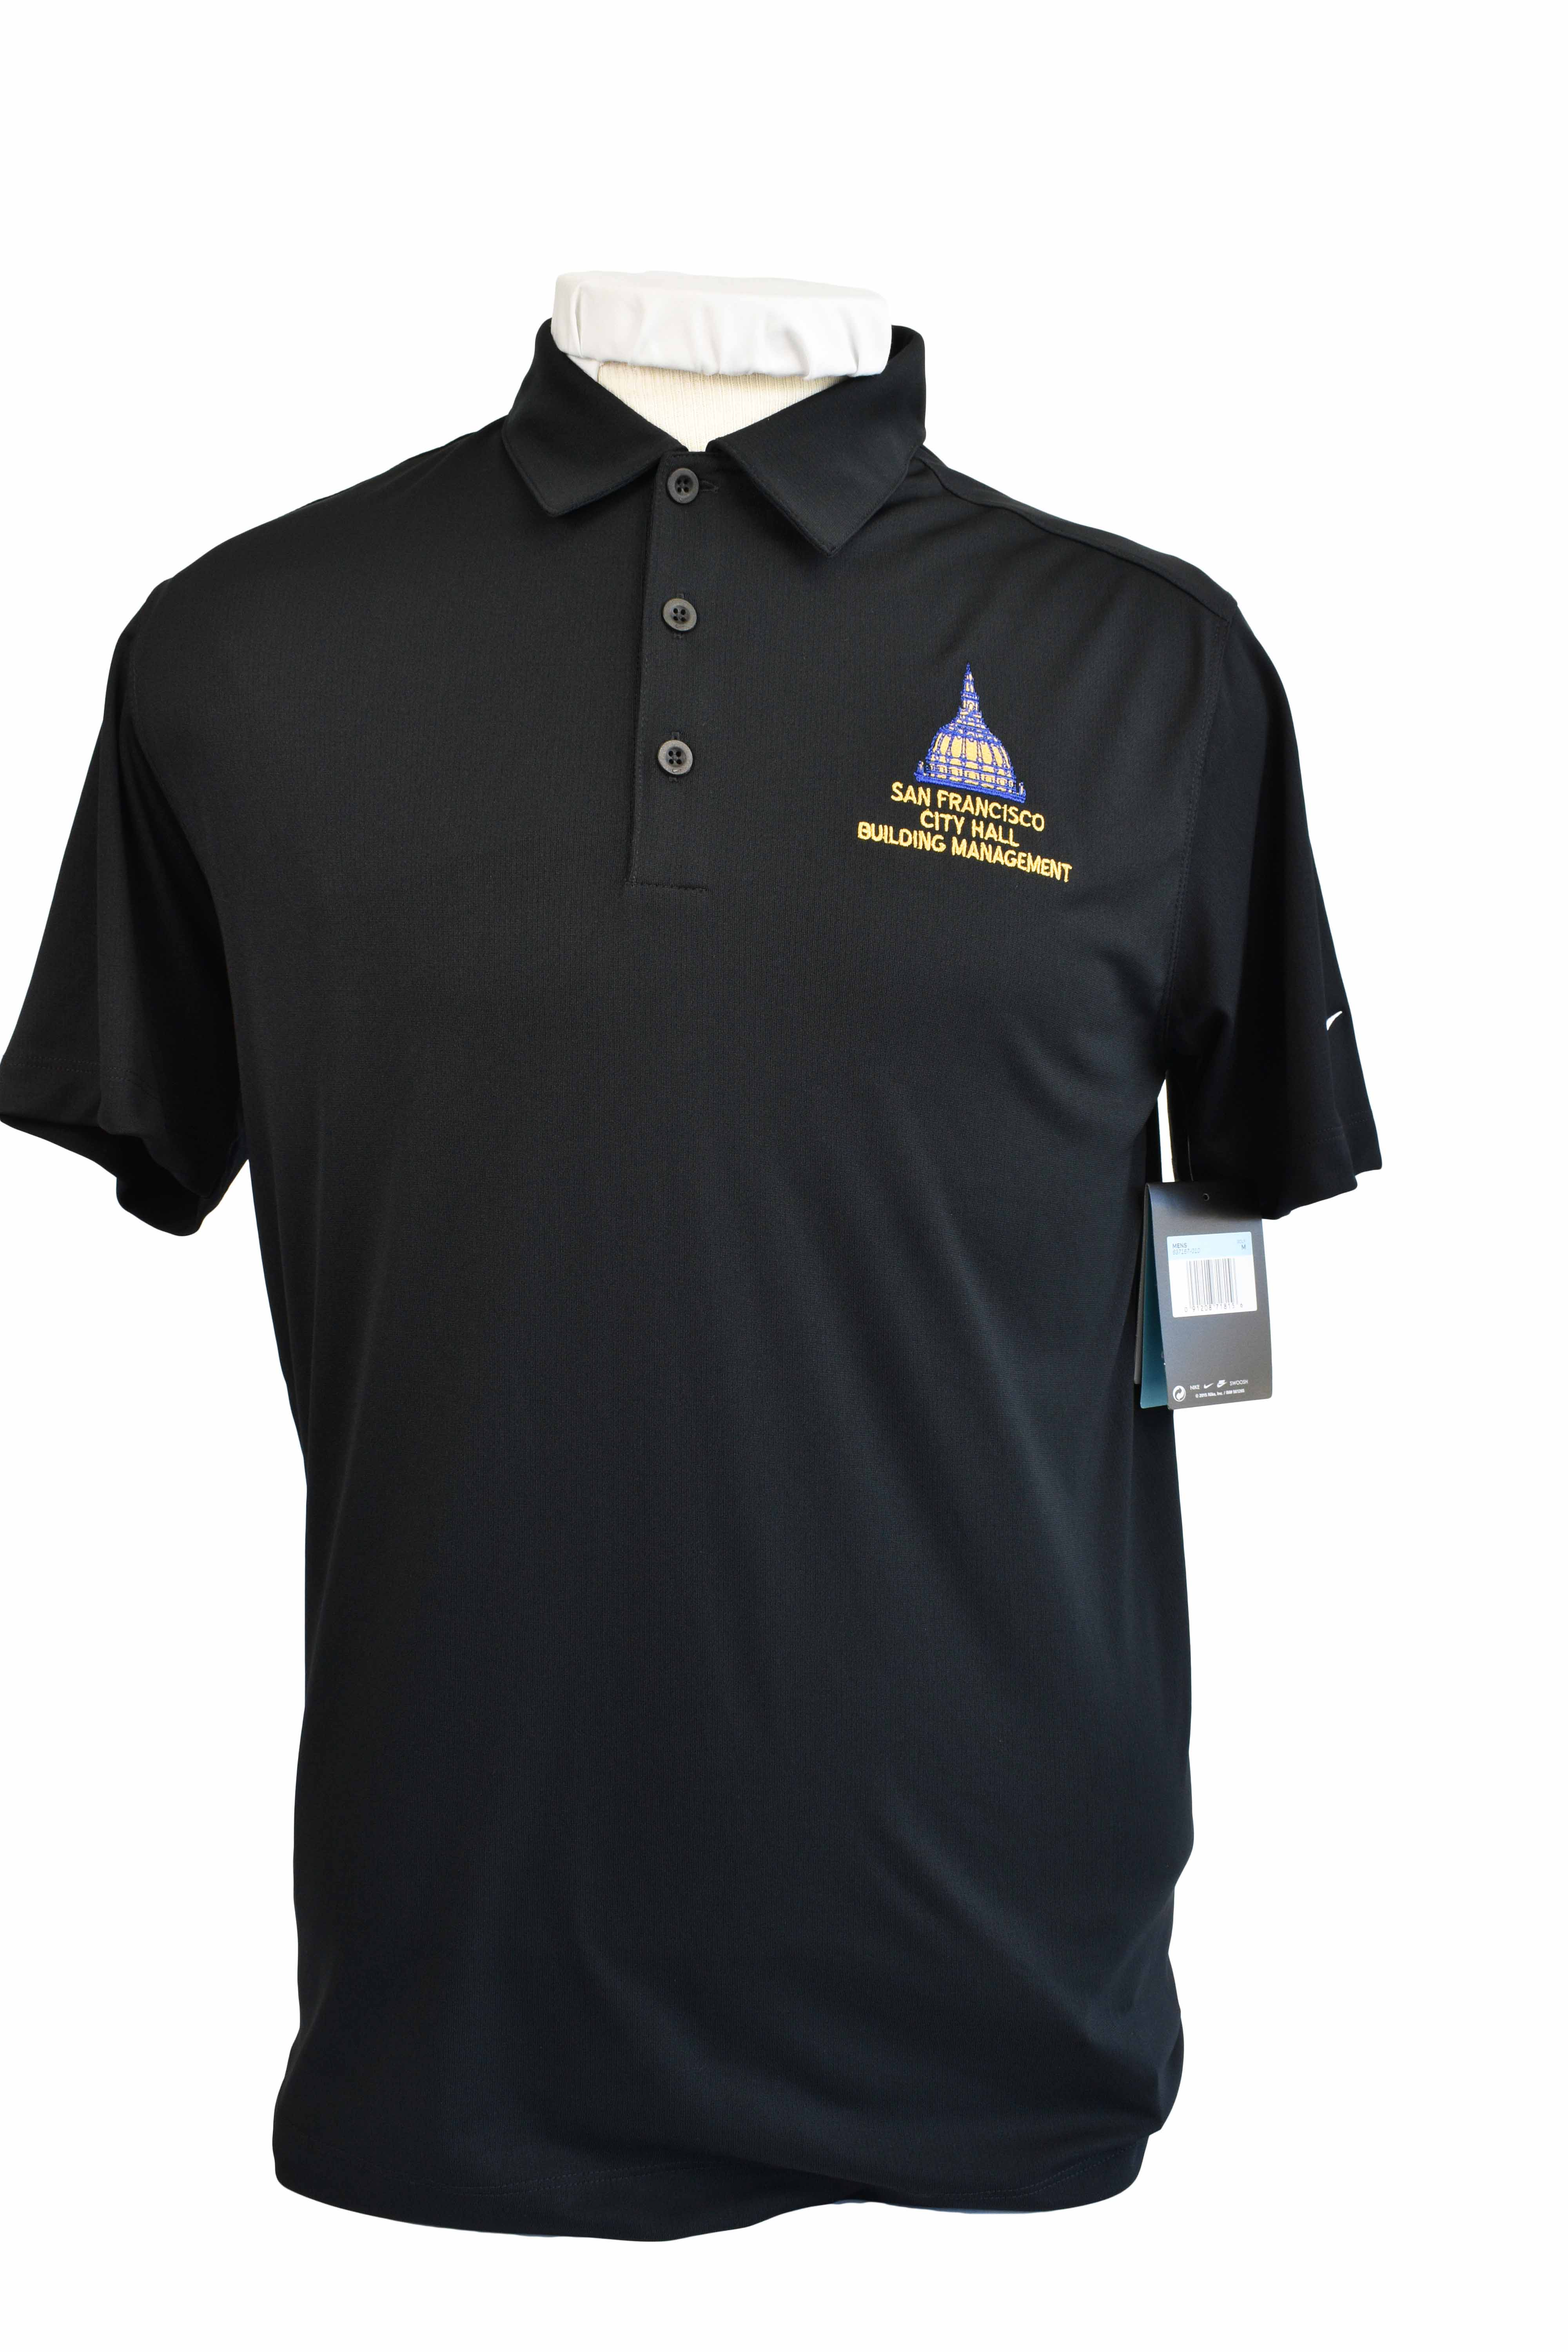 san francisco city hall building management uniforms shirt polo embroidery logo